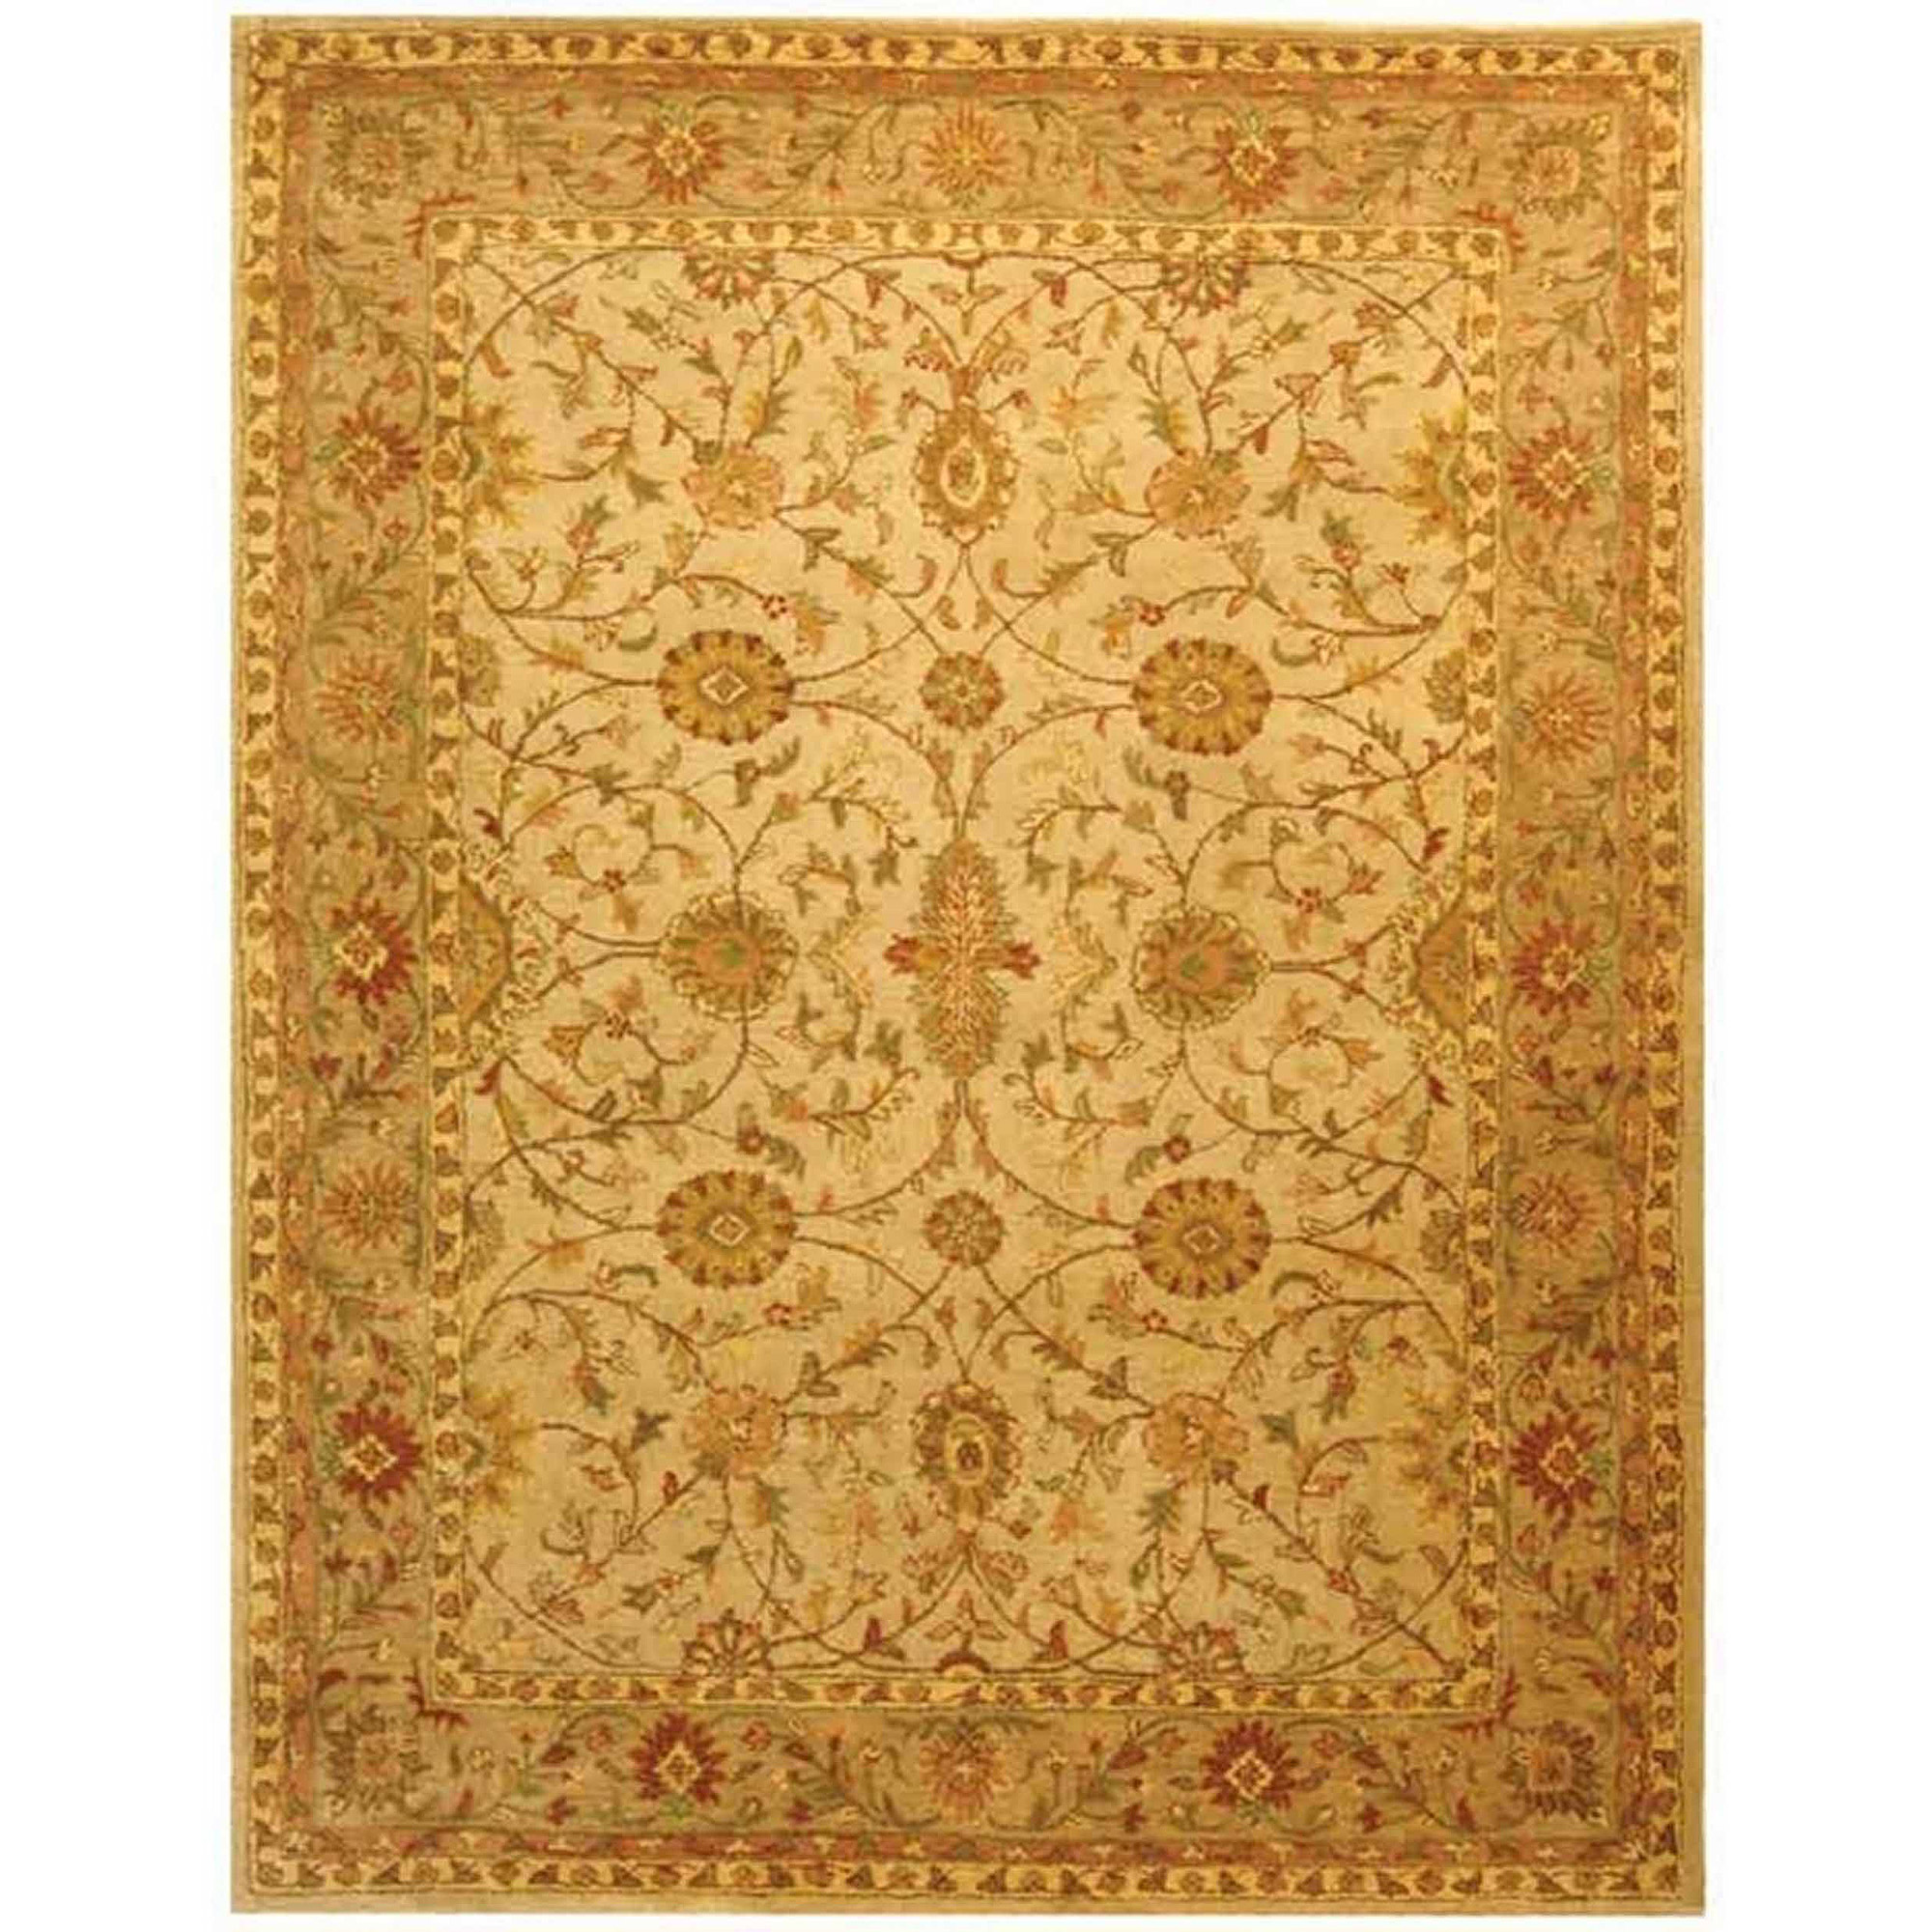 Safavieh Antiquity Ryder Hand-Tufted Wool Area Rug, Ivory/Light Green